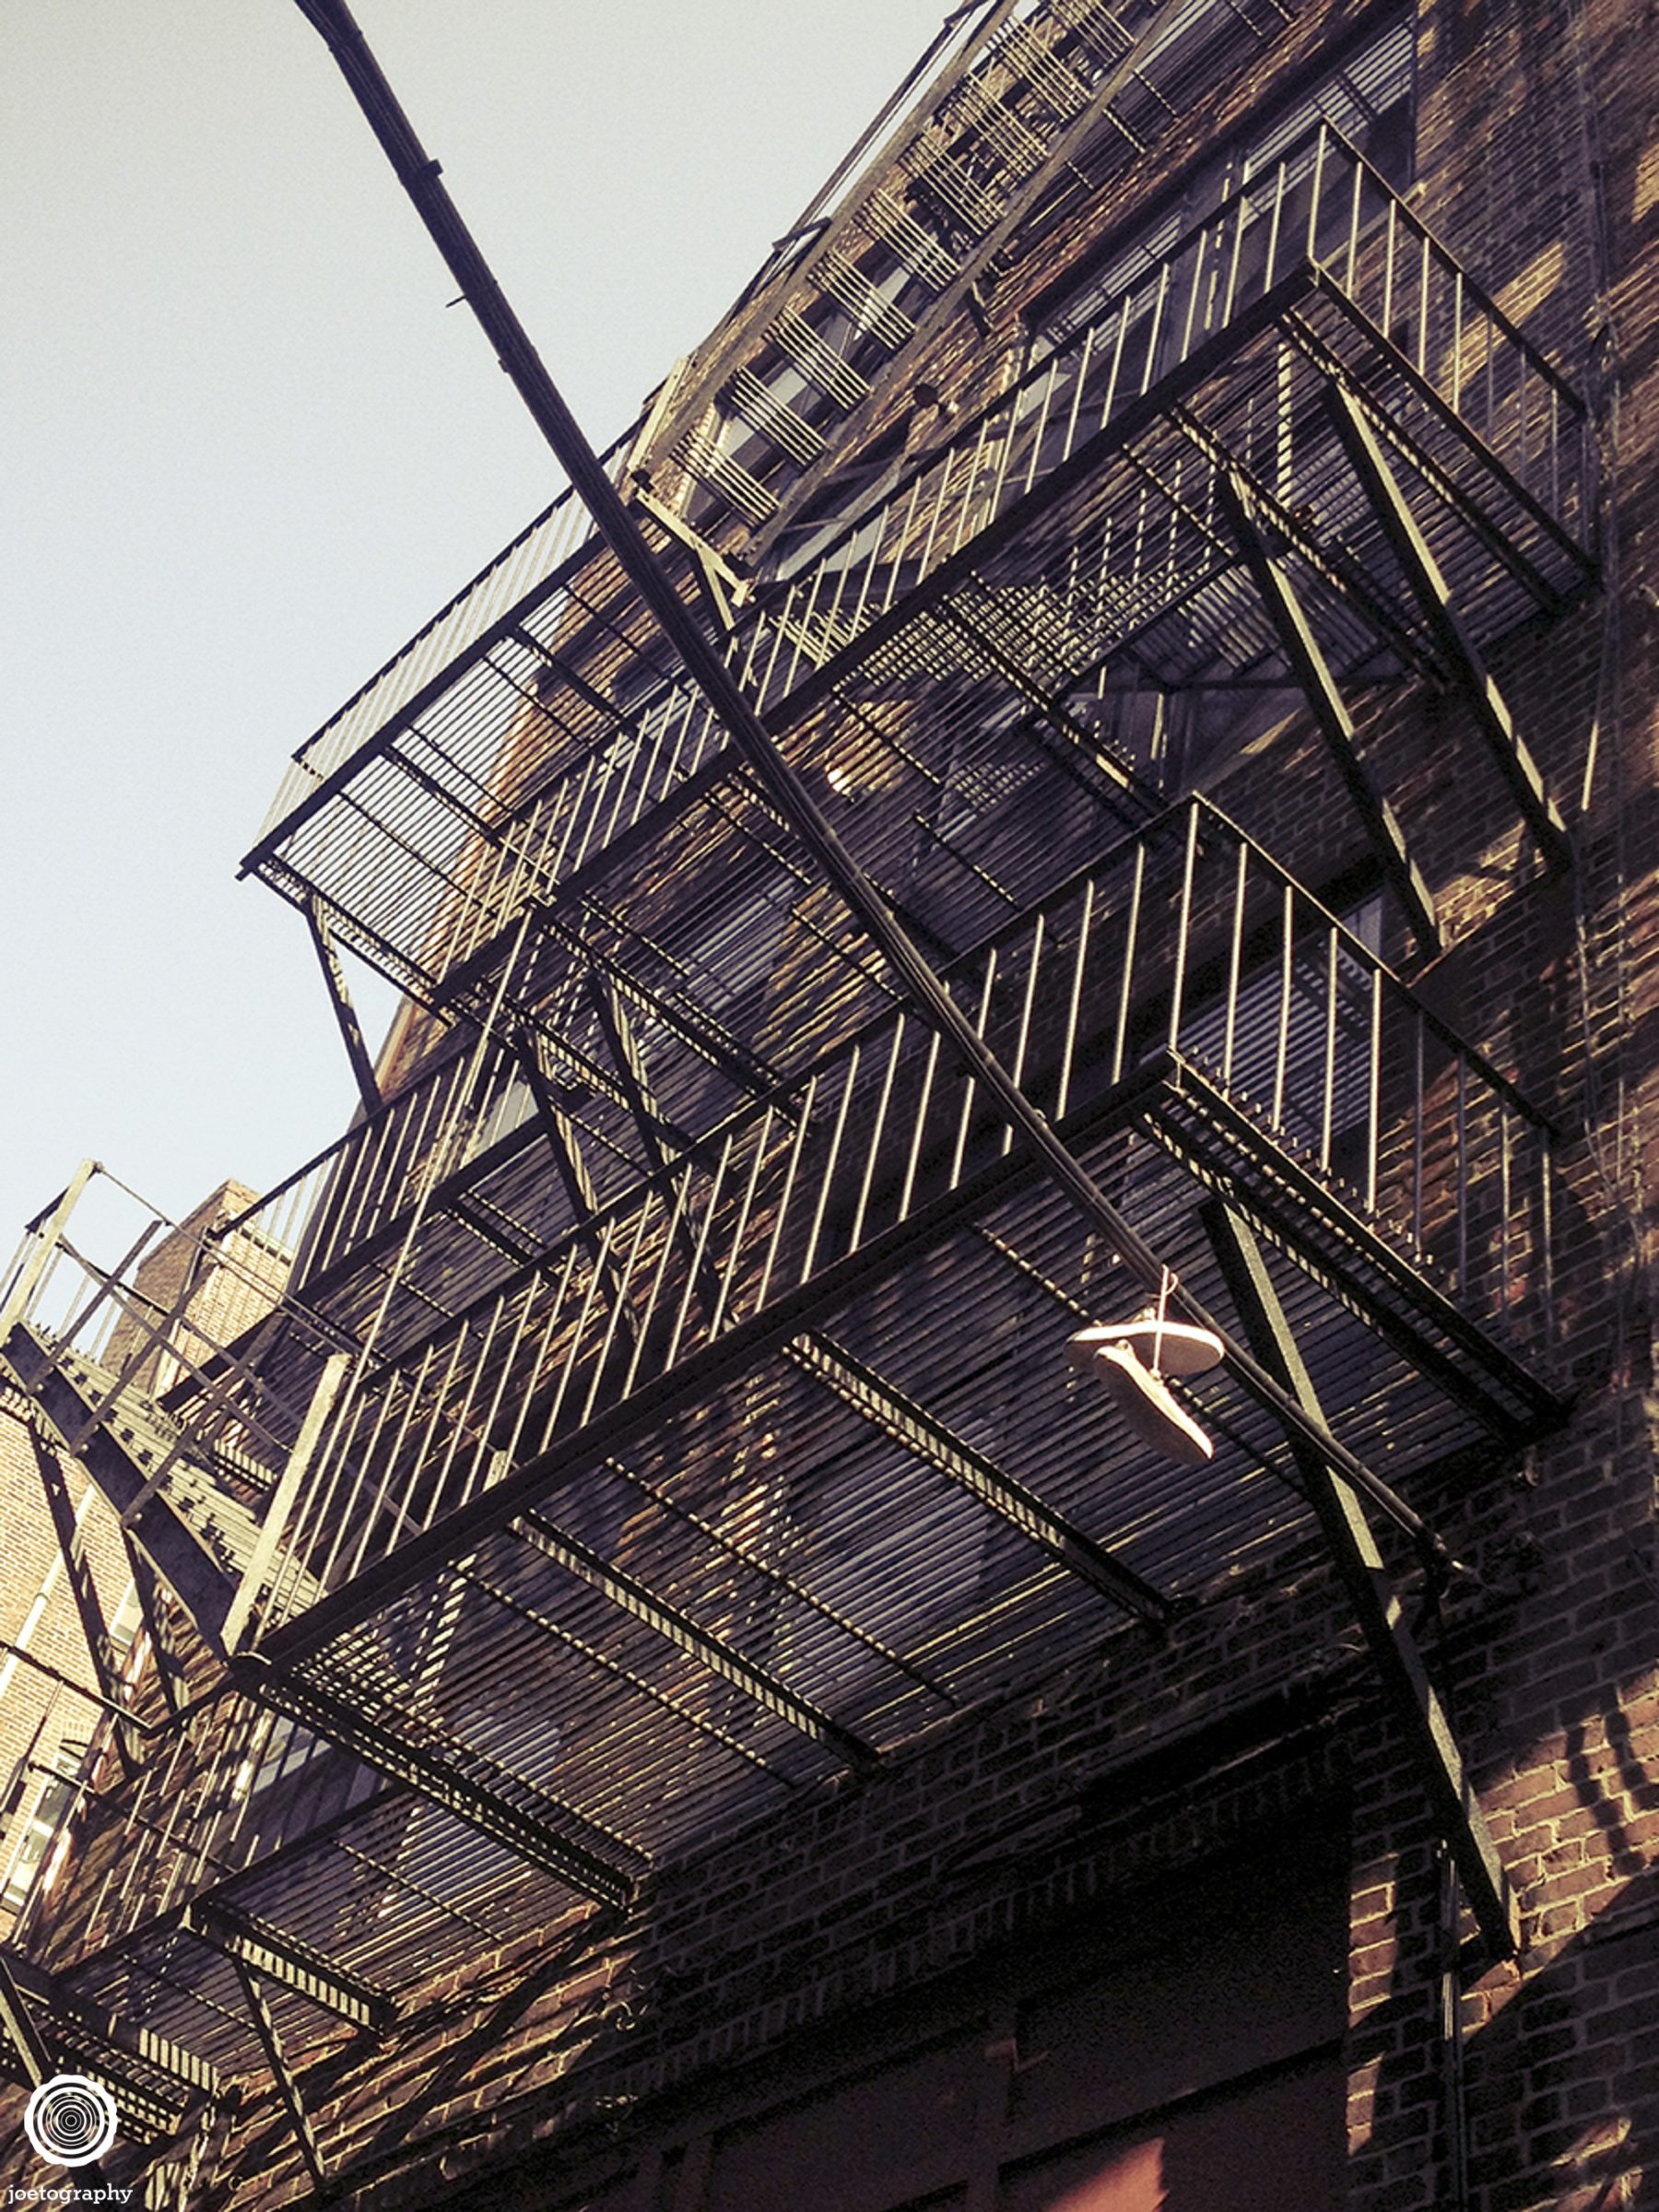 Alleyways-Awesomeways-Word-Picture-Photography-1